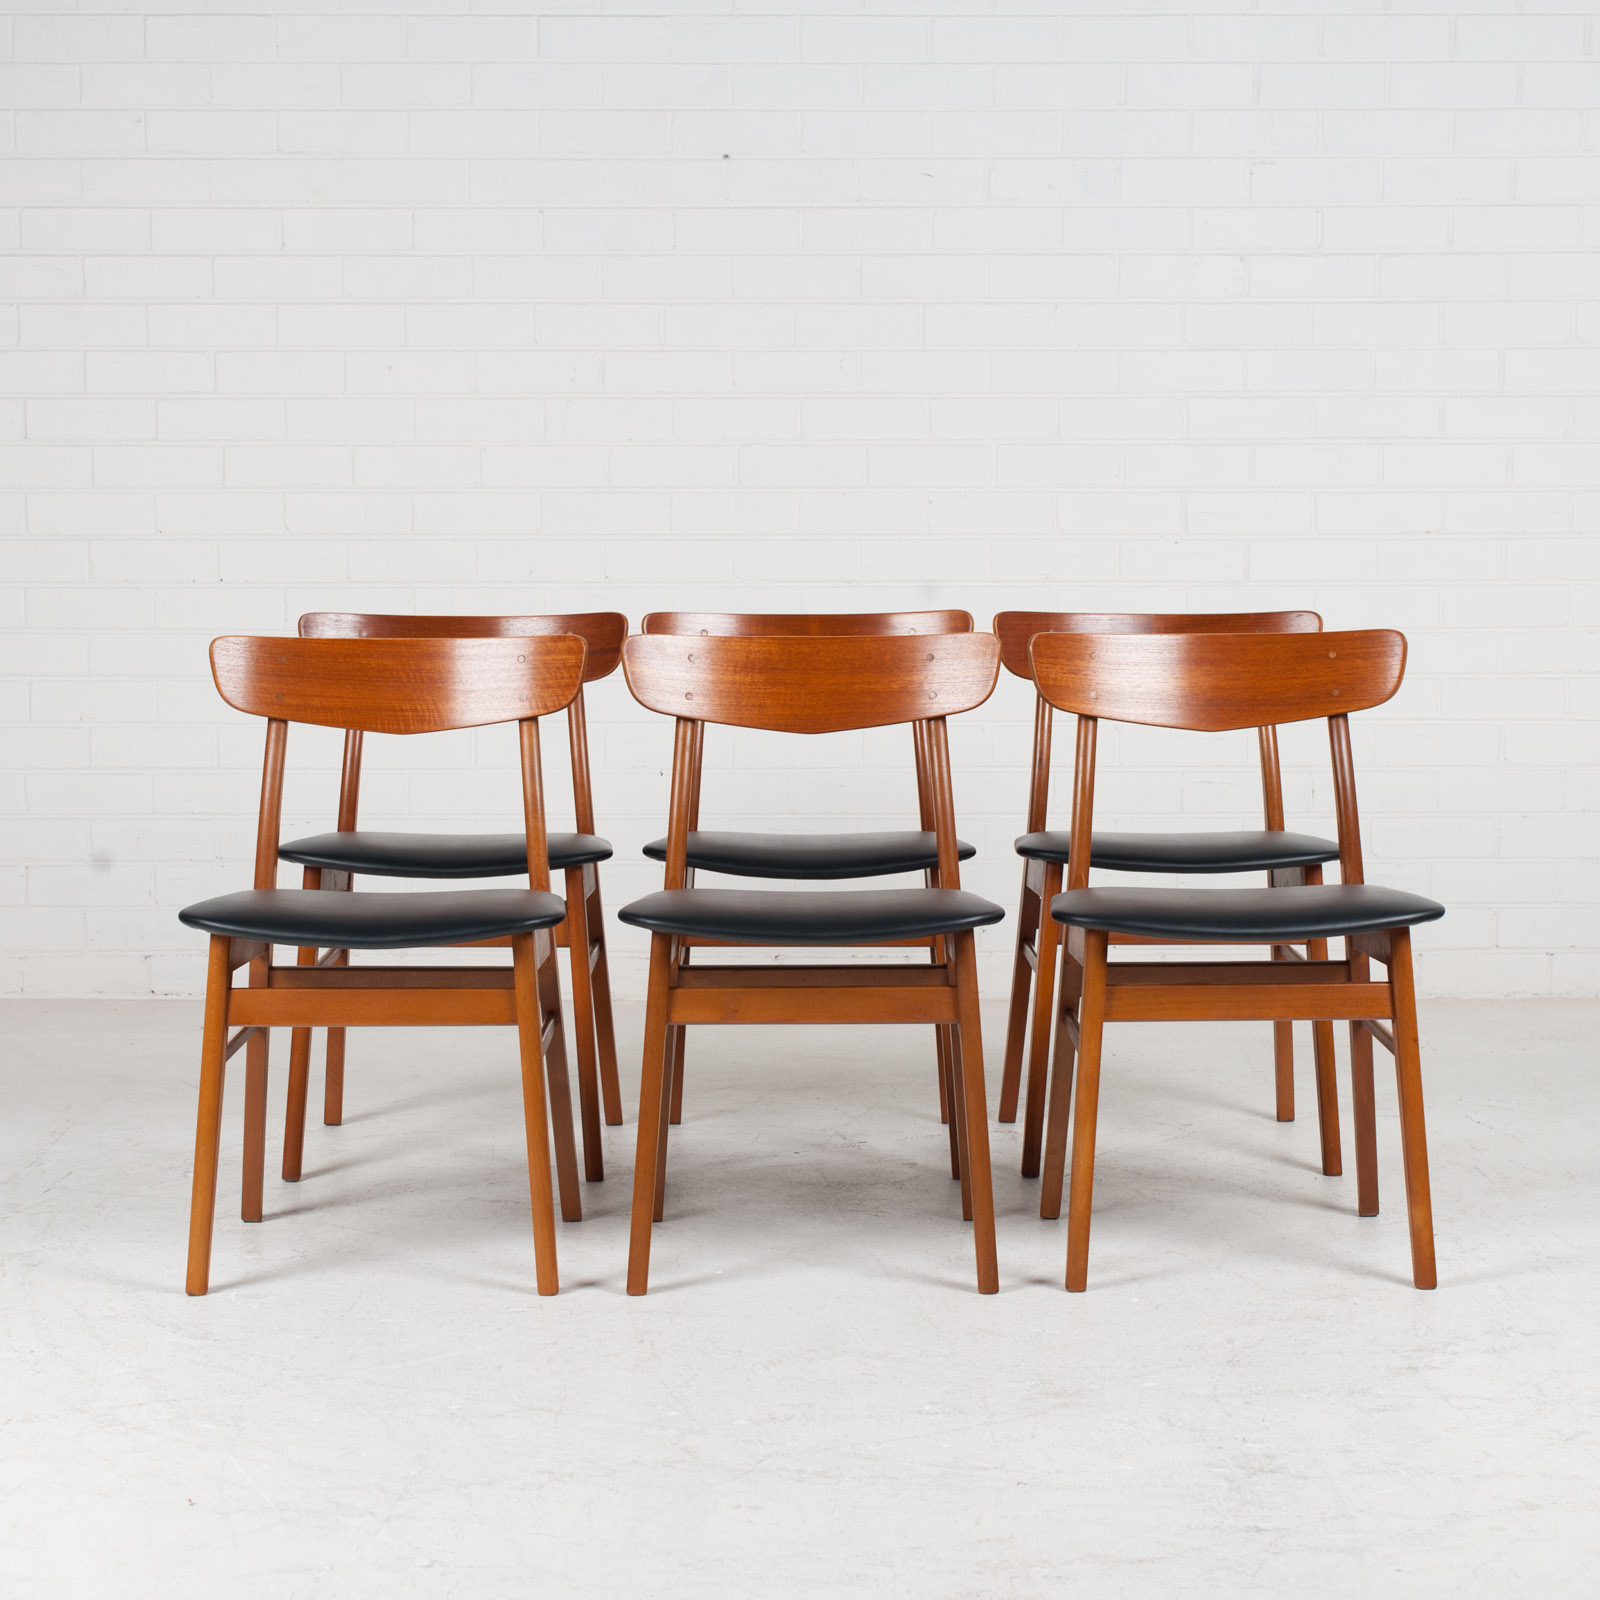 V Back Dining Chairs By Farstrup With Buttons In Teak And New Vinyl Upholstery 1960s Denmark 07